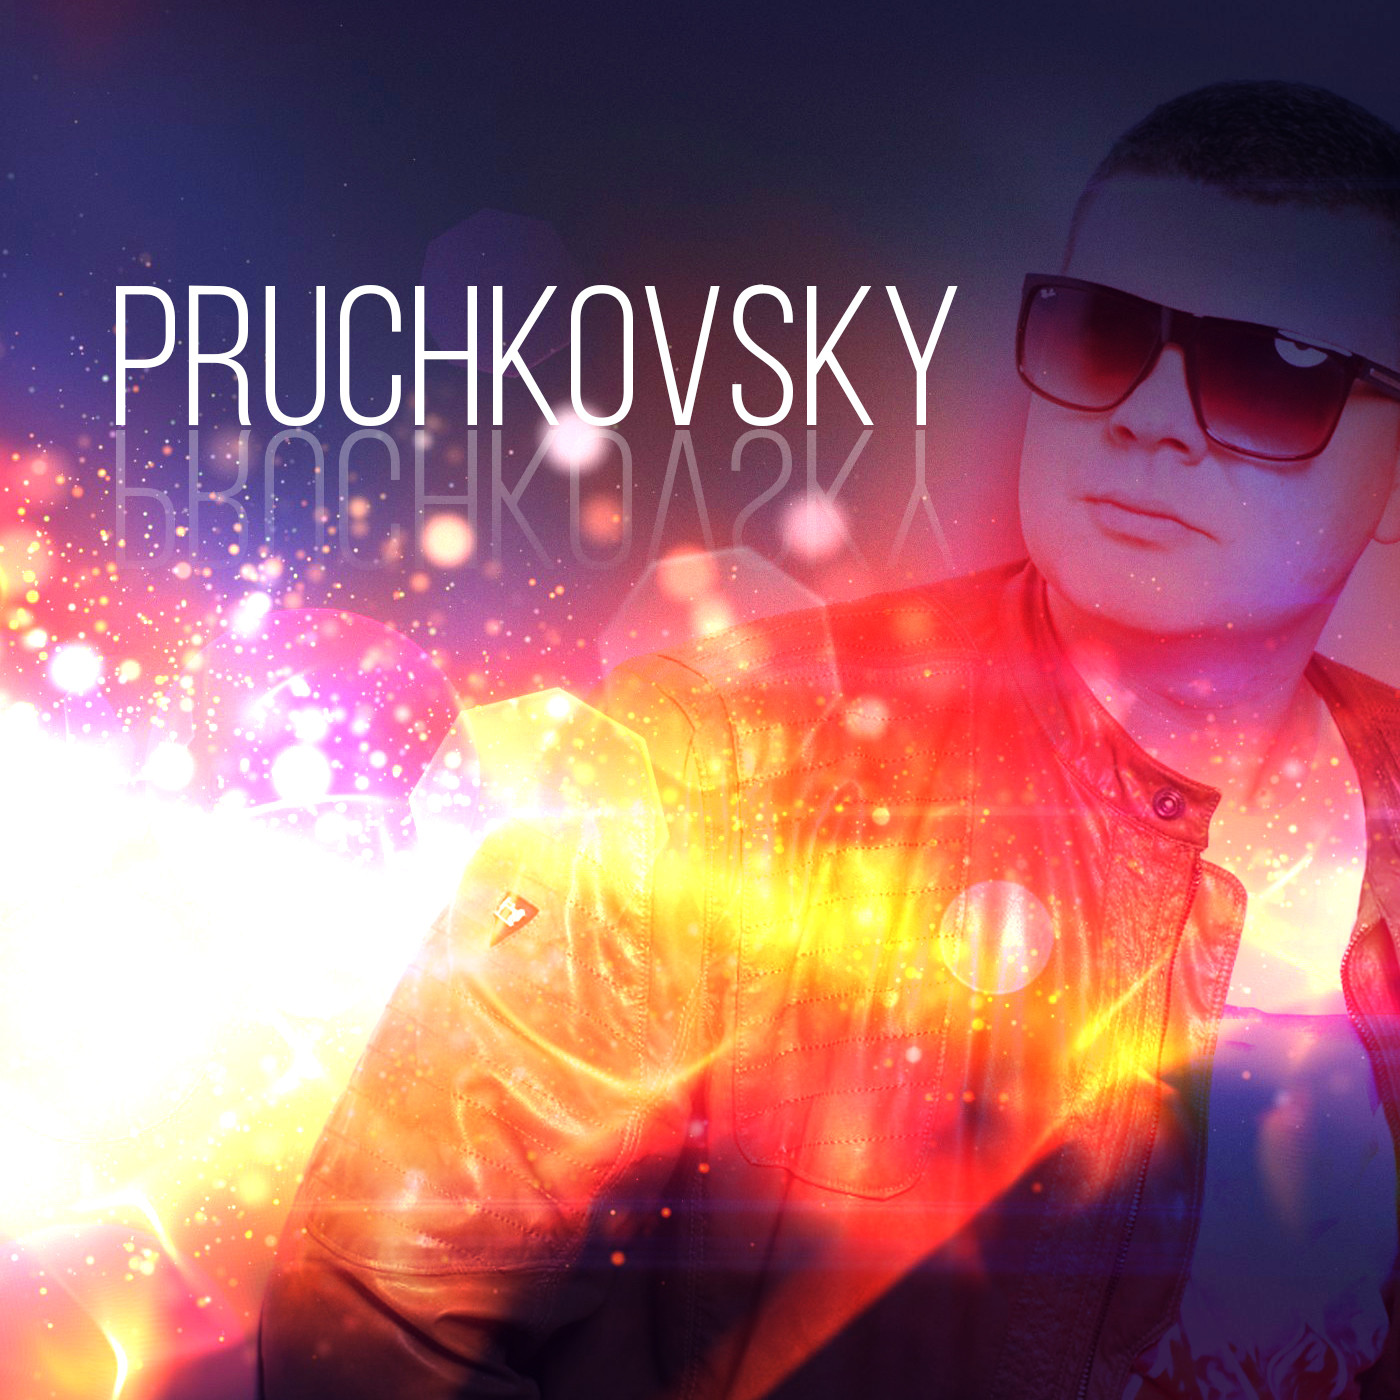 DJ PRUCHKOVSKY aka Two Killers